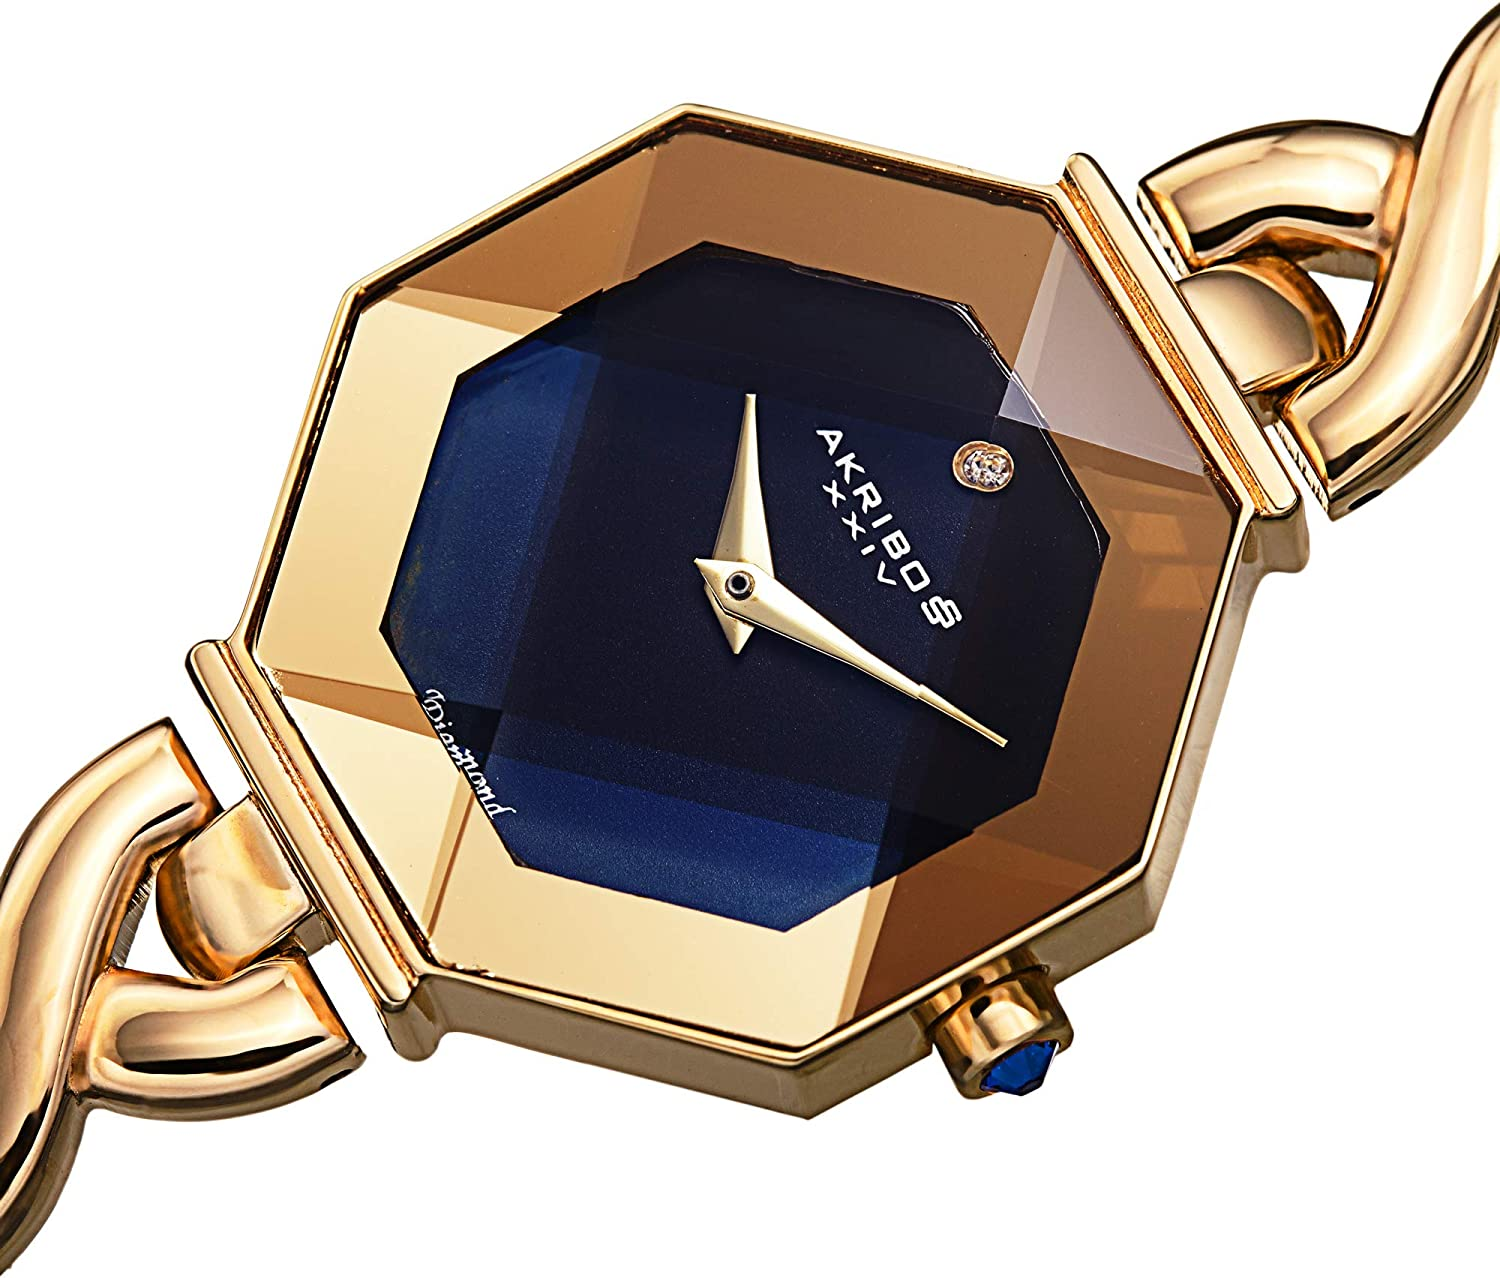 Akribos Octagonal Case Faceted Crystal Lens - Women's Watch - with Diamond Marker Adorned with Twisted Link Bracelet - AK1086 Yellow Gold on Blue Dial